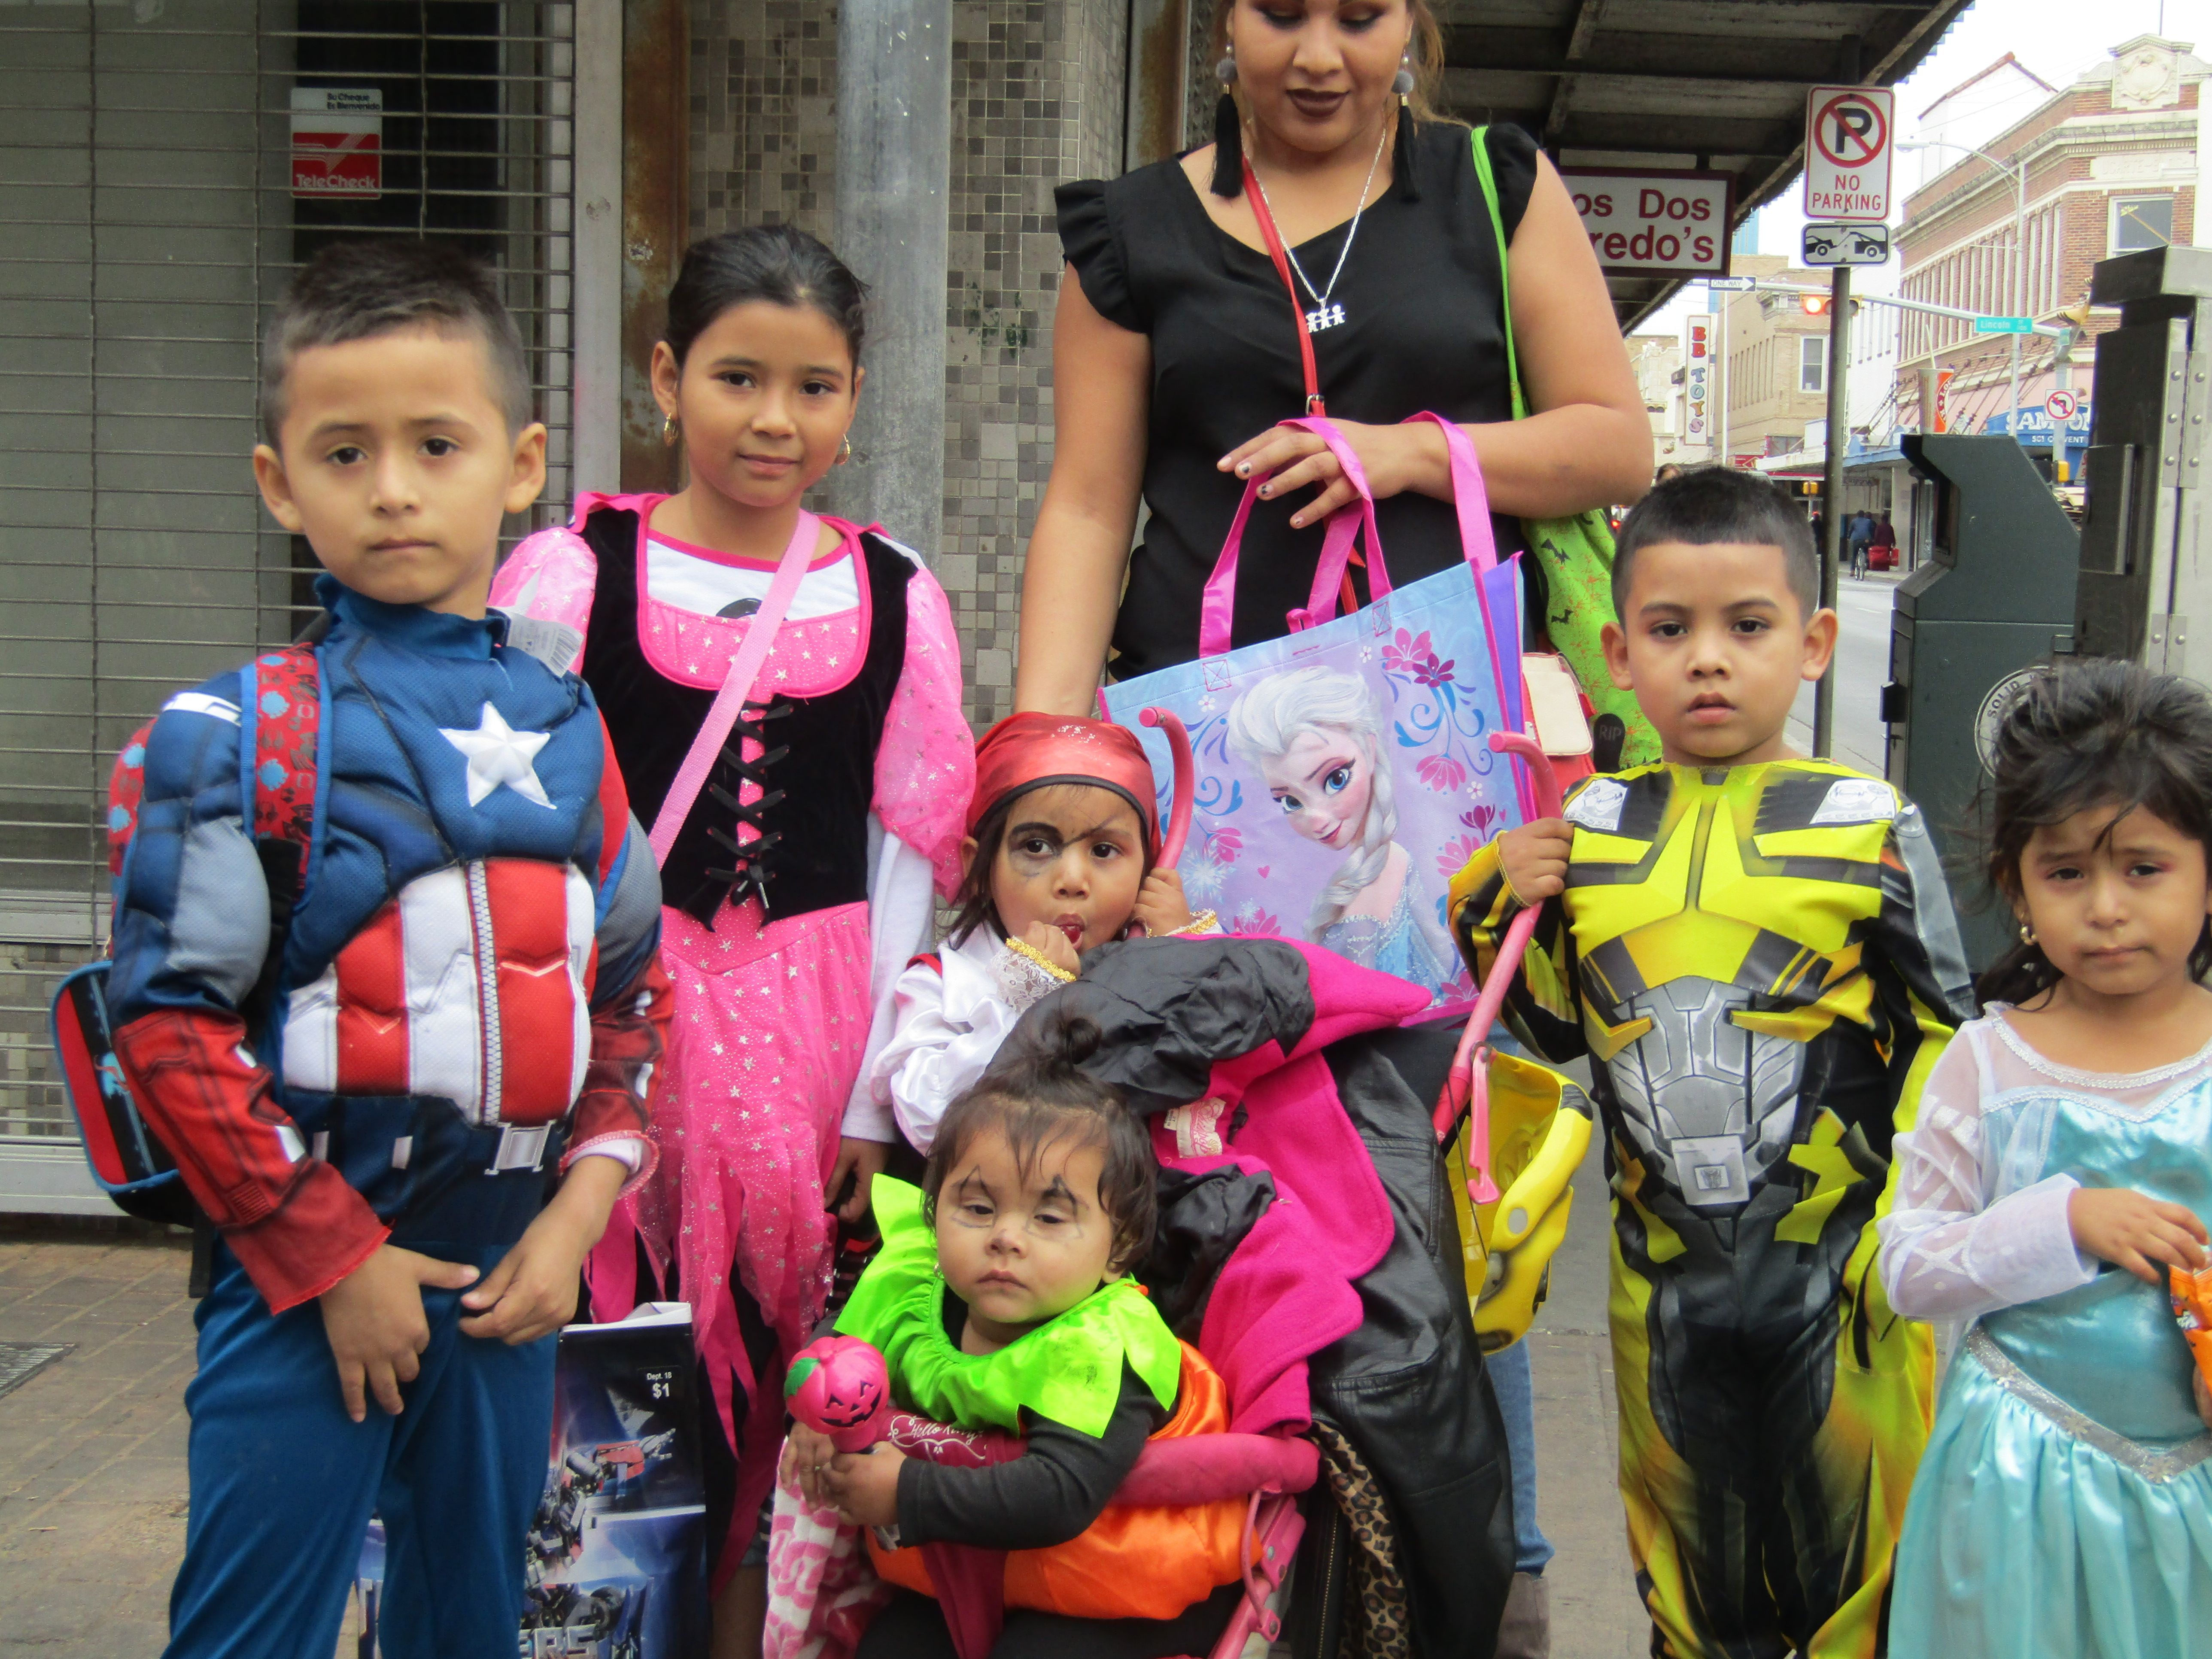 Trick Or Treaters In Downtown Laredo October 31 2017 Trick Or Treater Laredo Safe Cities